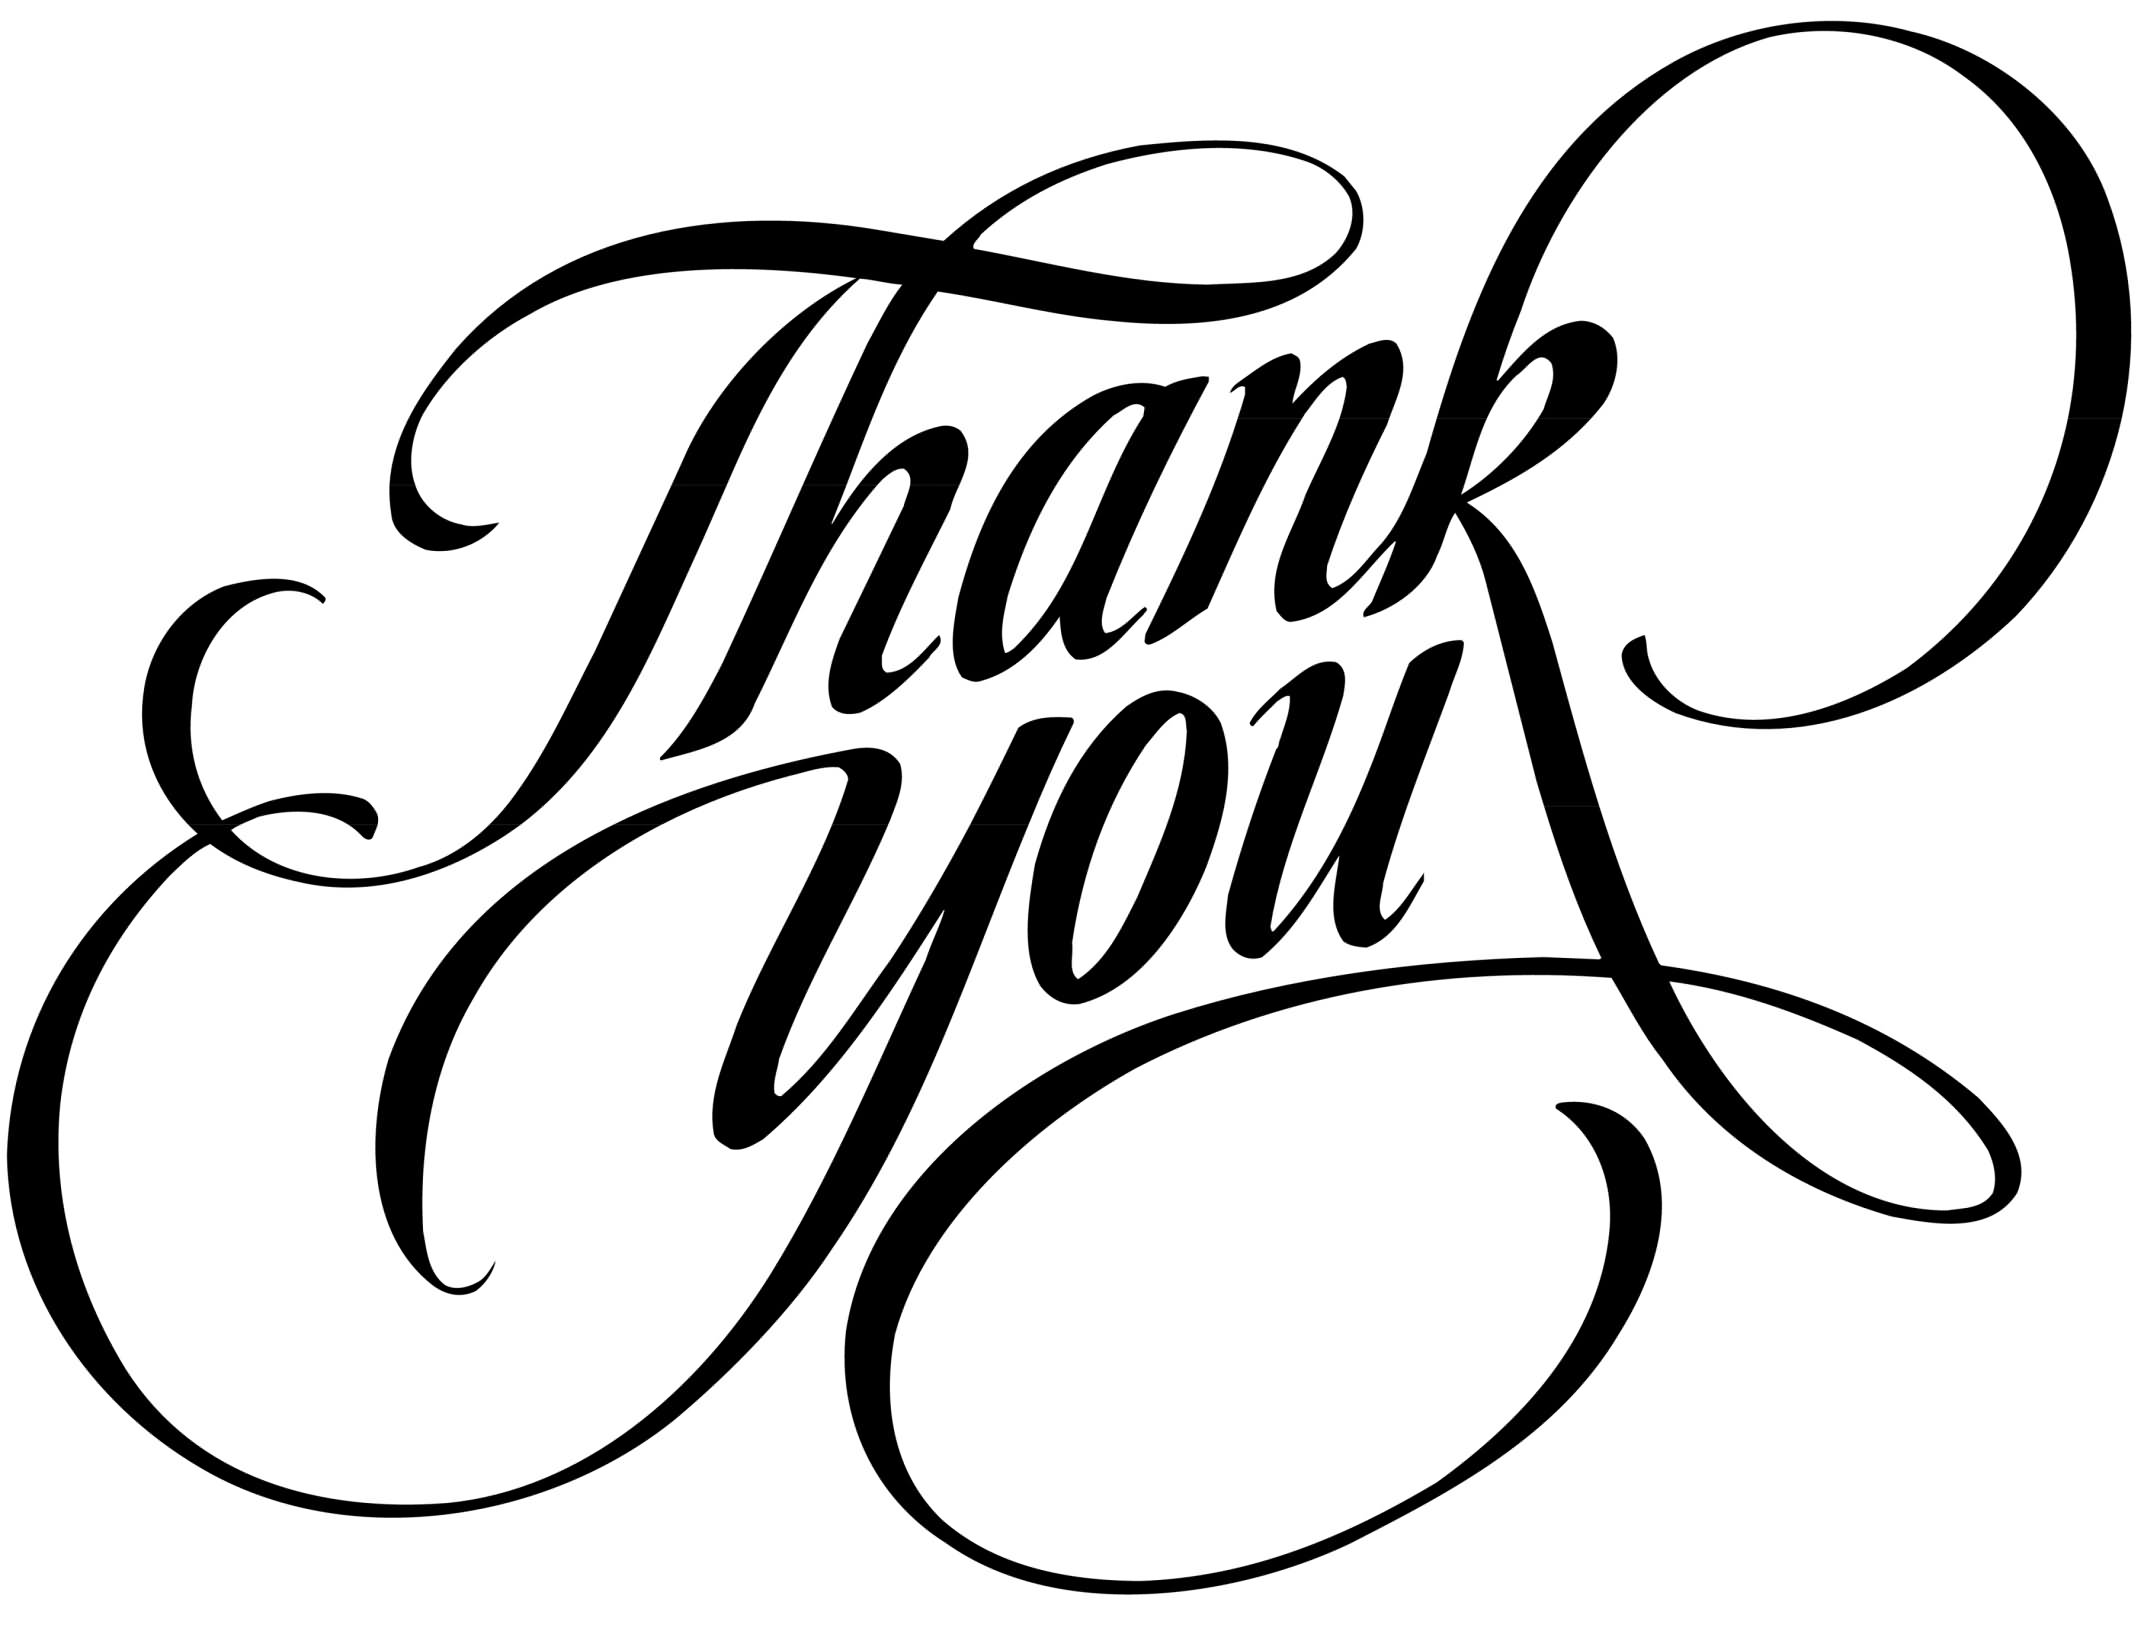 thank_you_simple_black_and_white_with_scrolls_sticker-re18915ee4cc741b497d8fc1e729e79b5_v9waf_8byvr_512.jpg